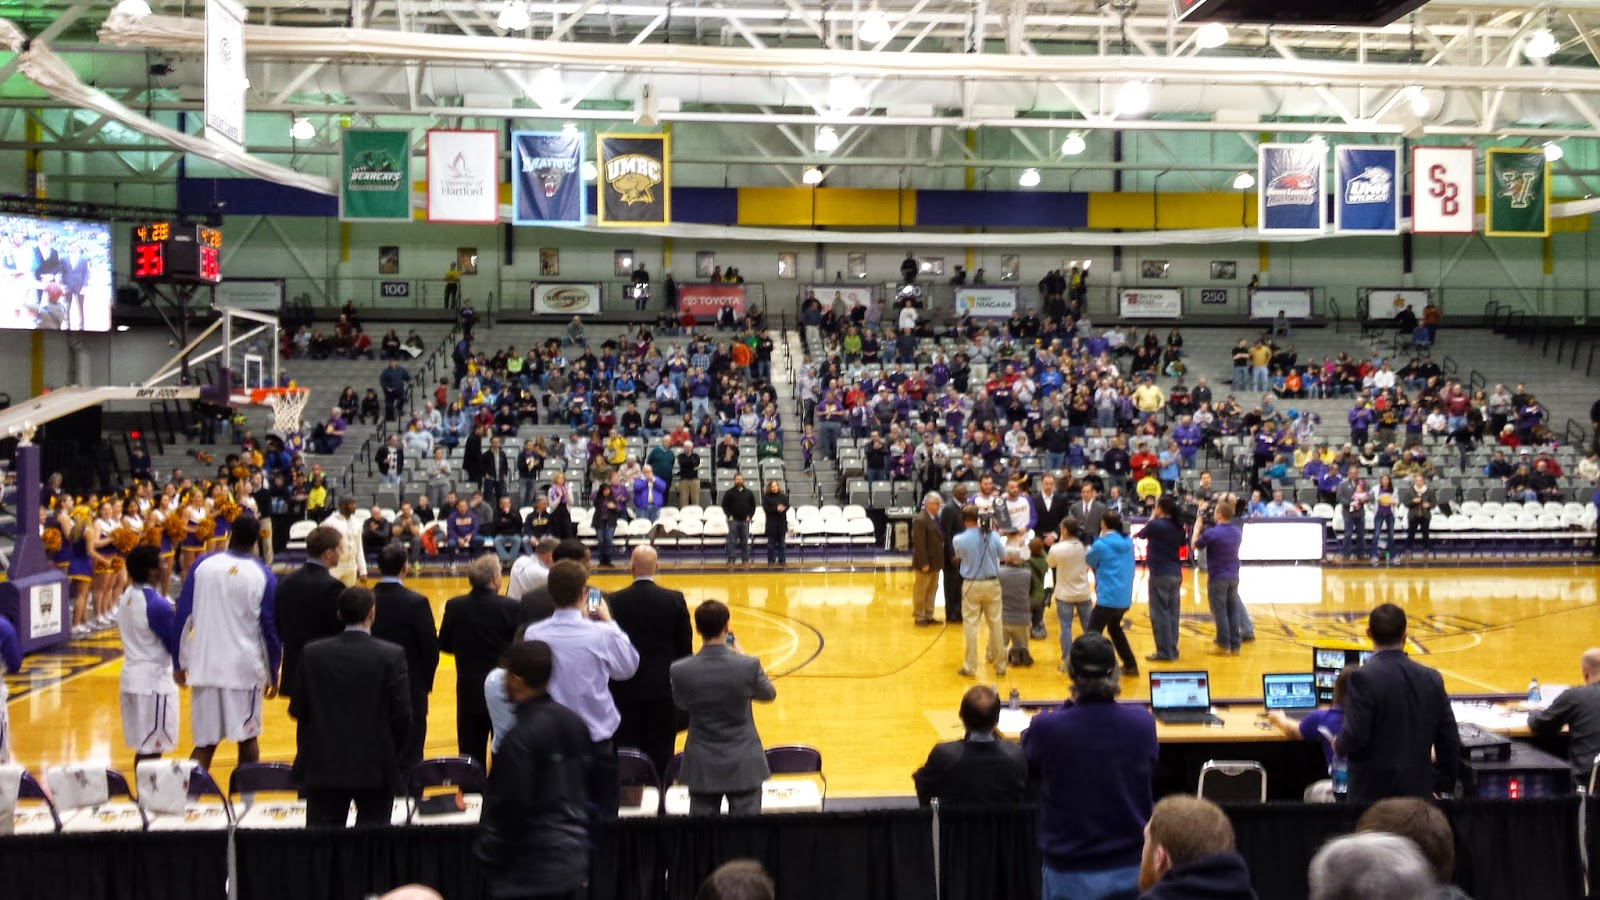 My First UAlbany Basketball Game, February 2, 2015, SEFCU Arena